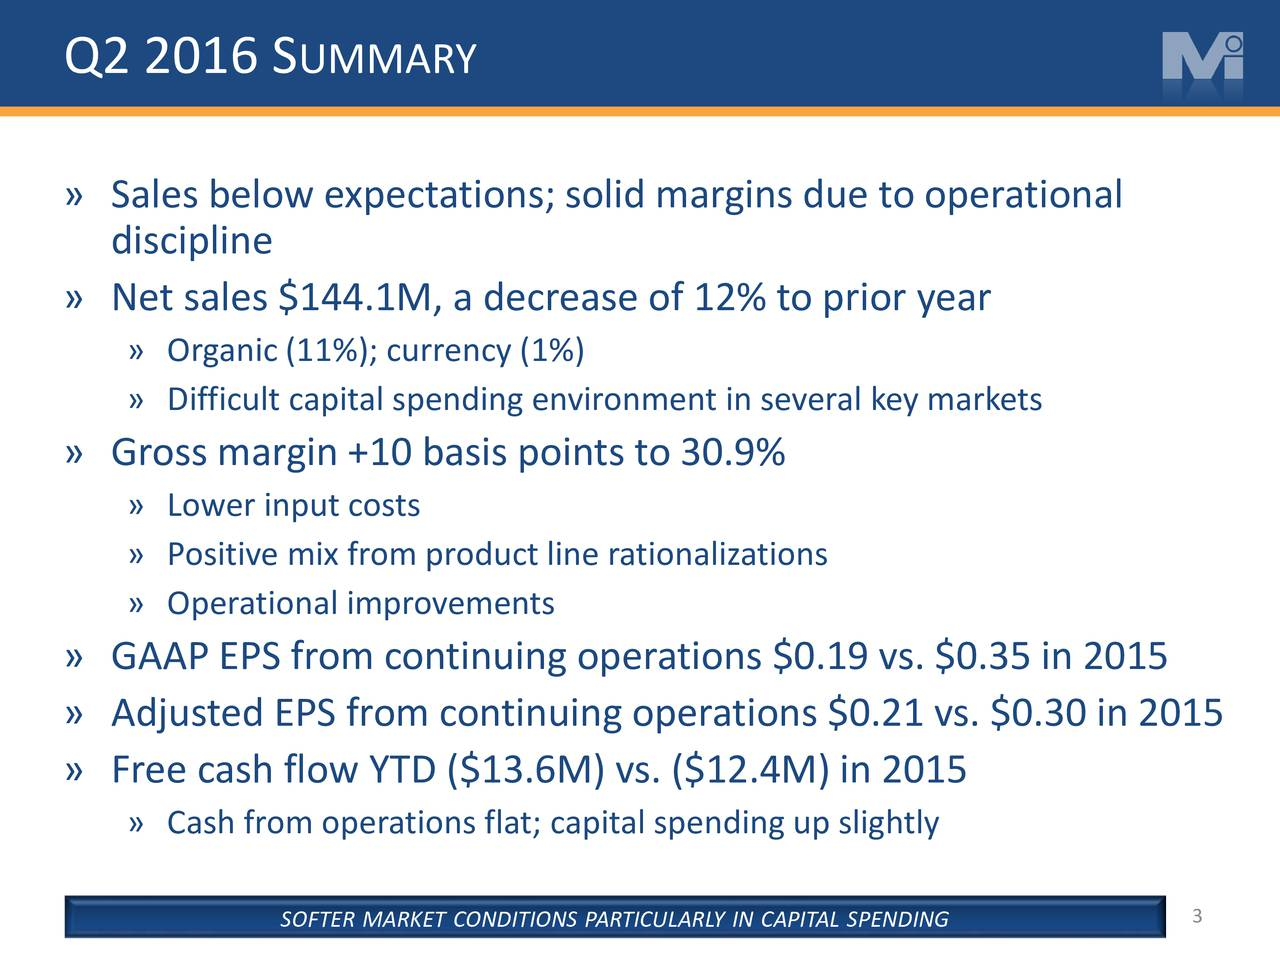 Sales below expectations; solid margins due to operational discipline Net sales $144.1M, a decrease of 12% to prior year Organic (11%); currency (1%) Difficult capital spending environment in several key markets Gross margin +10 basis points to 30.9% Lower input costs Positive mix from product line rationalizations Operational improvements GAAP EPS from continuing operations $0.19 vs. $0.35 in 2015 Adjusted EPS from continuing operations $0.21 vs. $0.30 in 2015 Free cash flow YTD ($13.6M) vs. ($12.4M) in 2015 Cash from operations flat; capital spending up slightly SOFTER MARKET CONDITIONS PARTICULARLY IN CAPITAL SPENDING